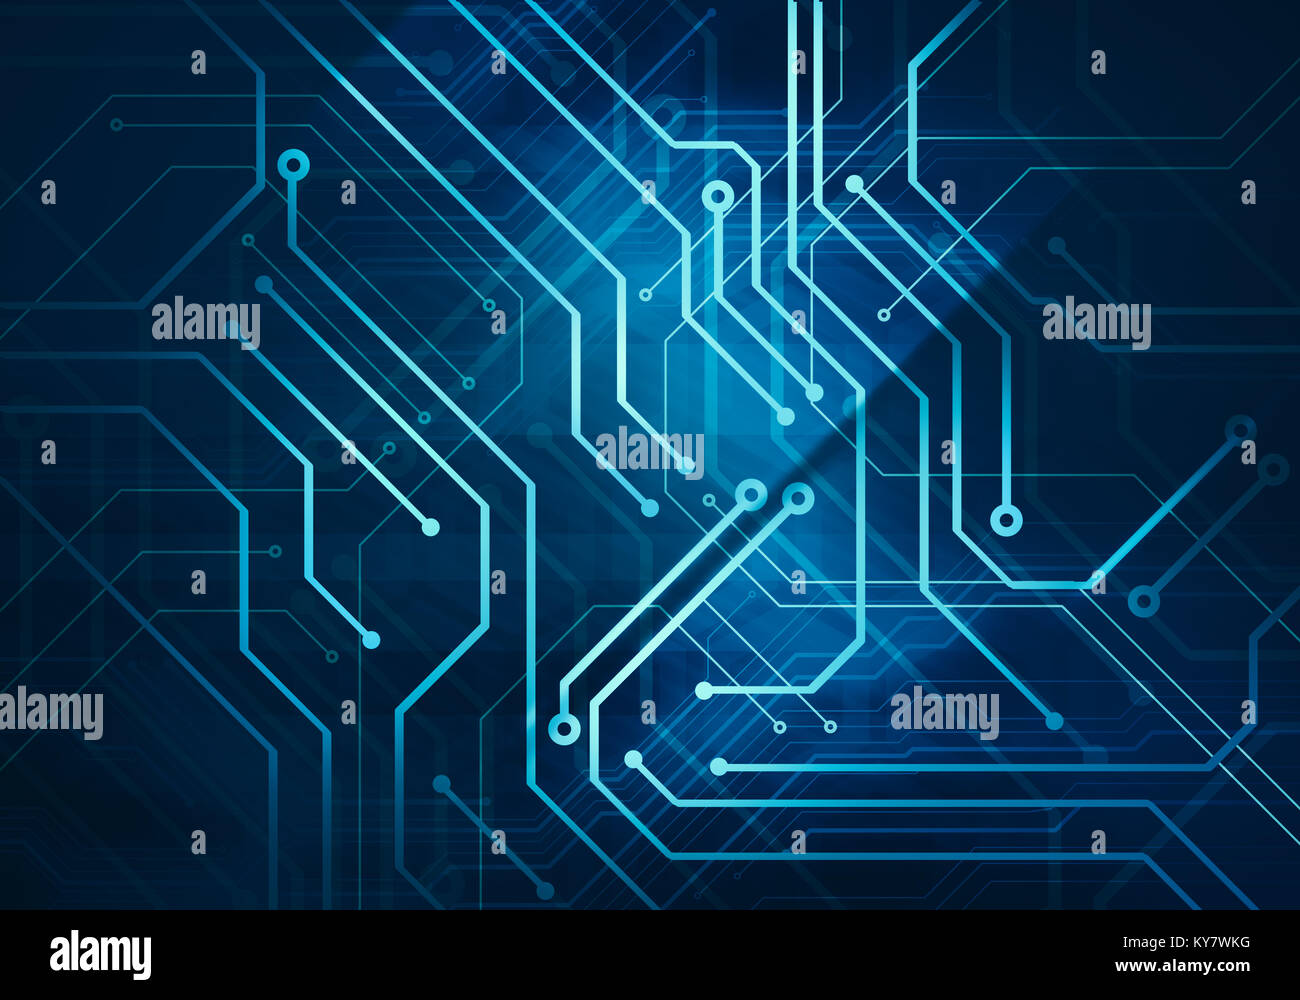 Digital conceptual image circuit microchip on dark blue background on